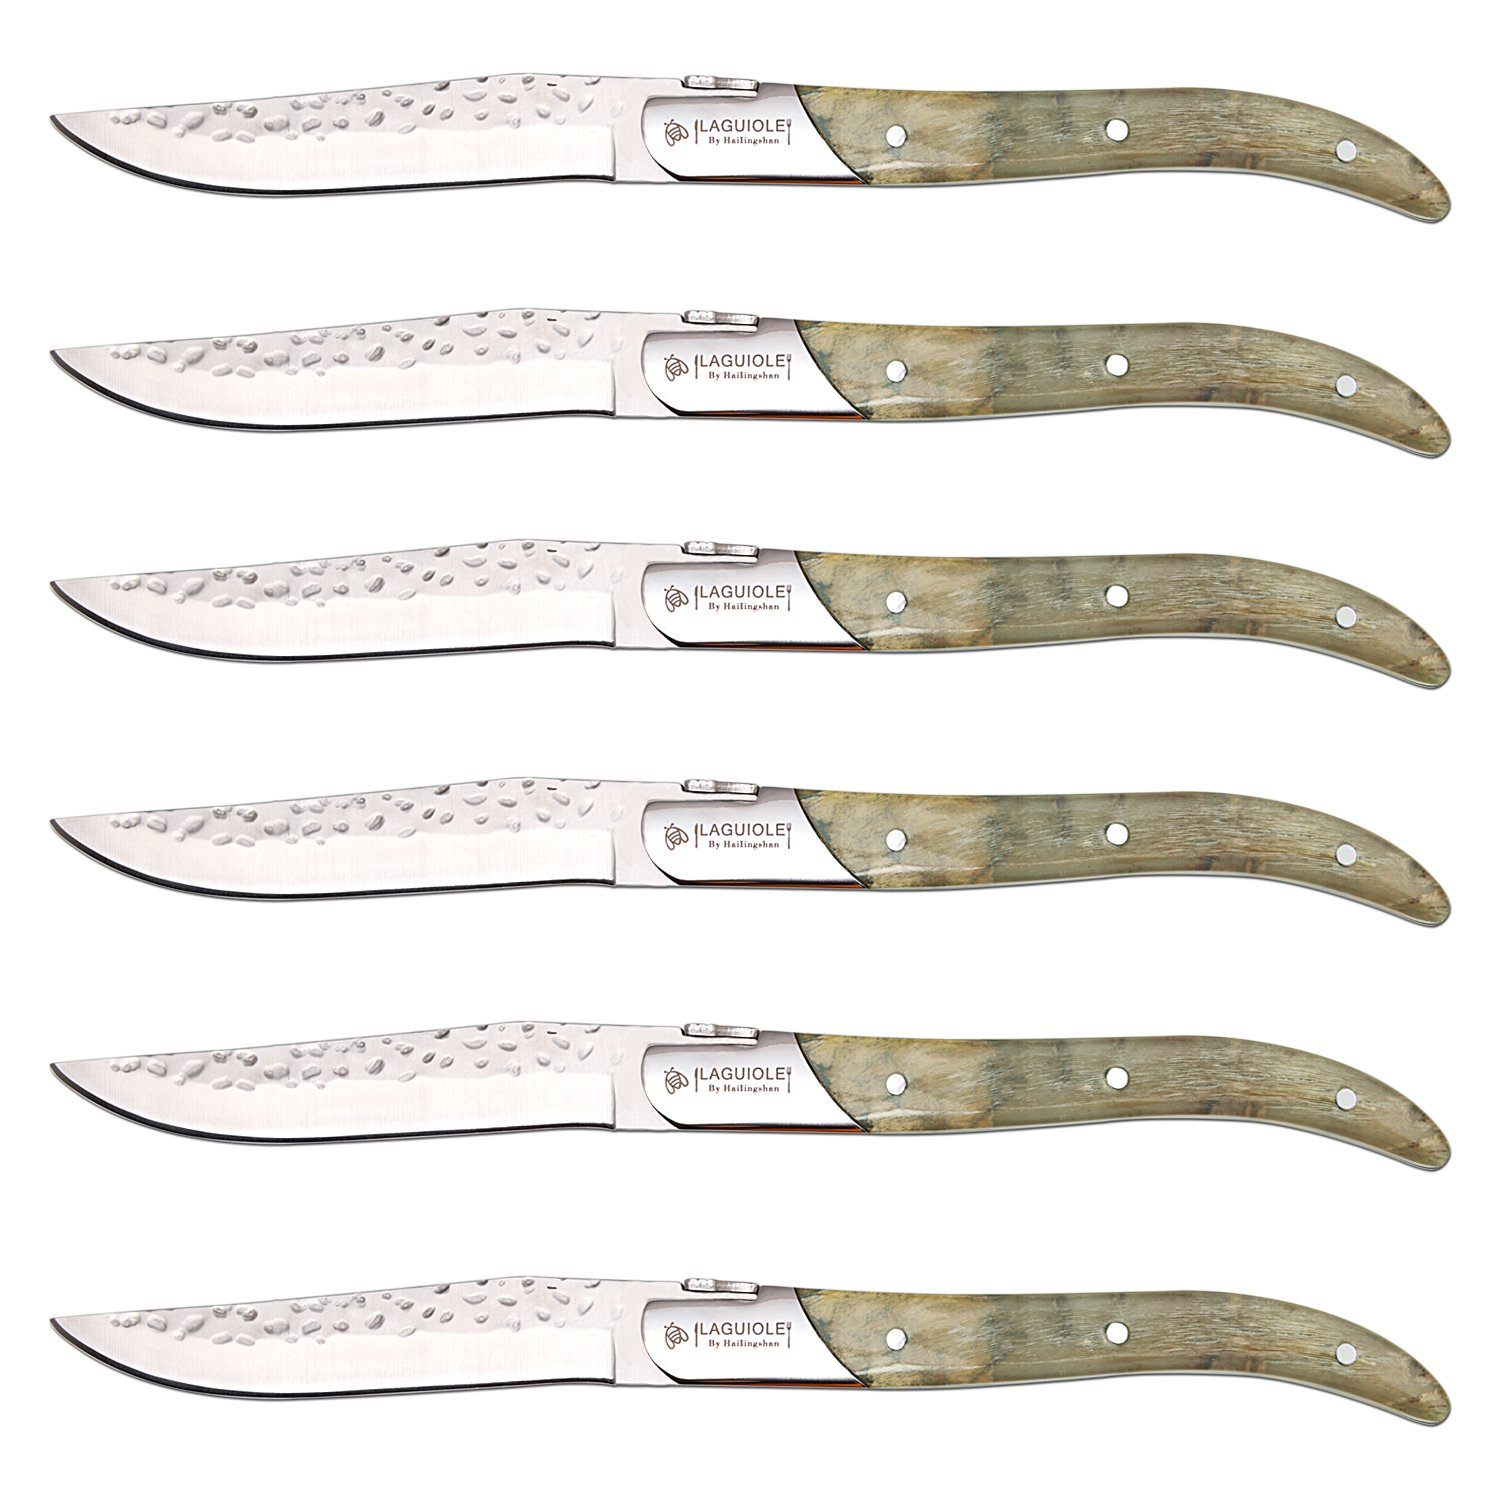 [Set of 6] Steak Knives,Hailingshan Stainless Steel Straight Blade Boxed Laguiole Sharp Top Grade Cutlery Kitchen Table Dinner Knives Anti-rust Dishwasher Safe Mirror Polished Flatware-Horn Handle